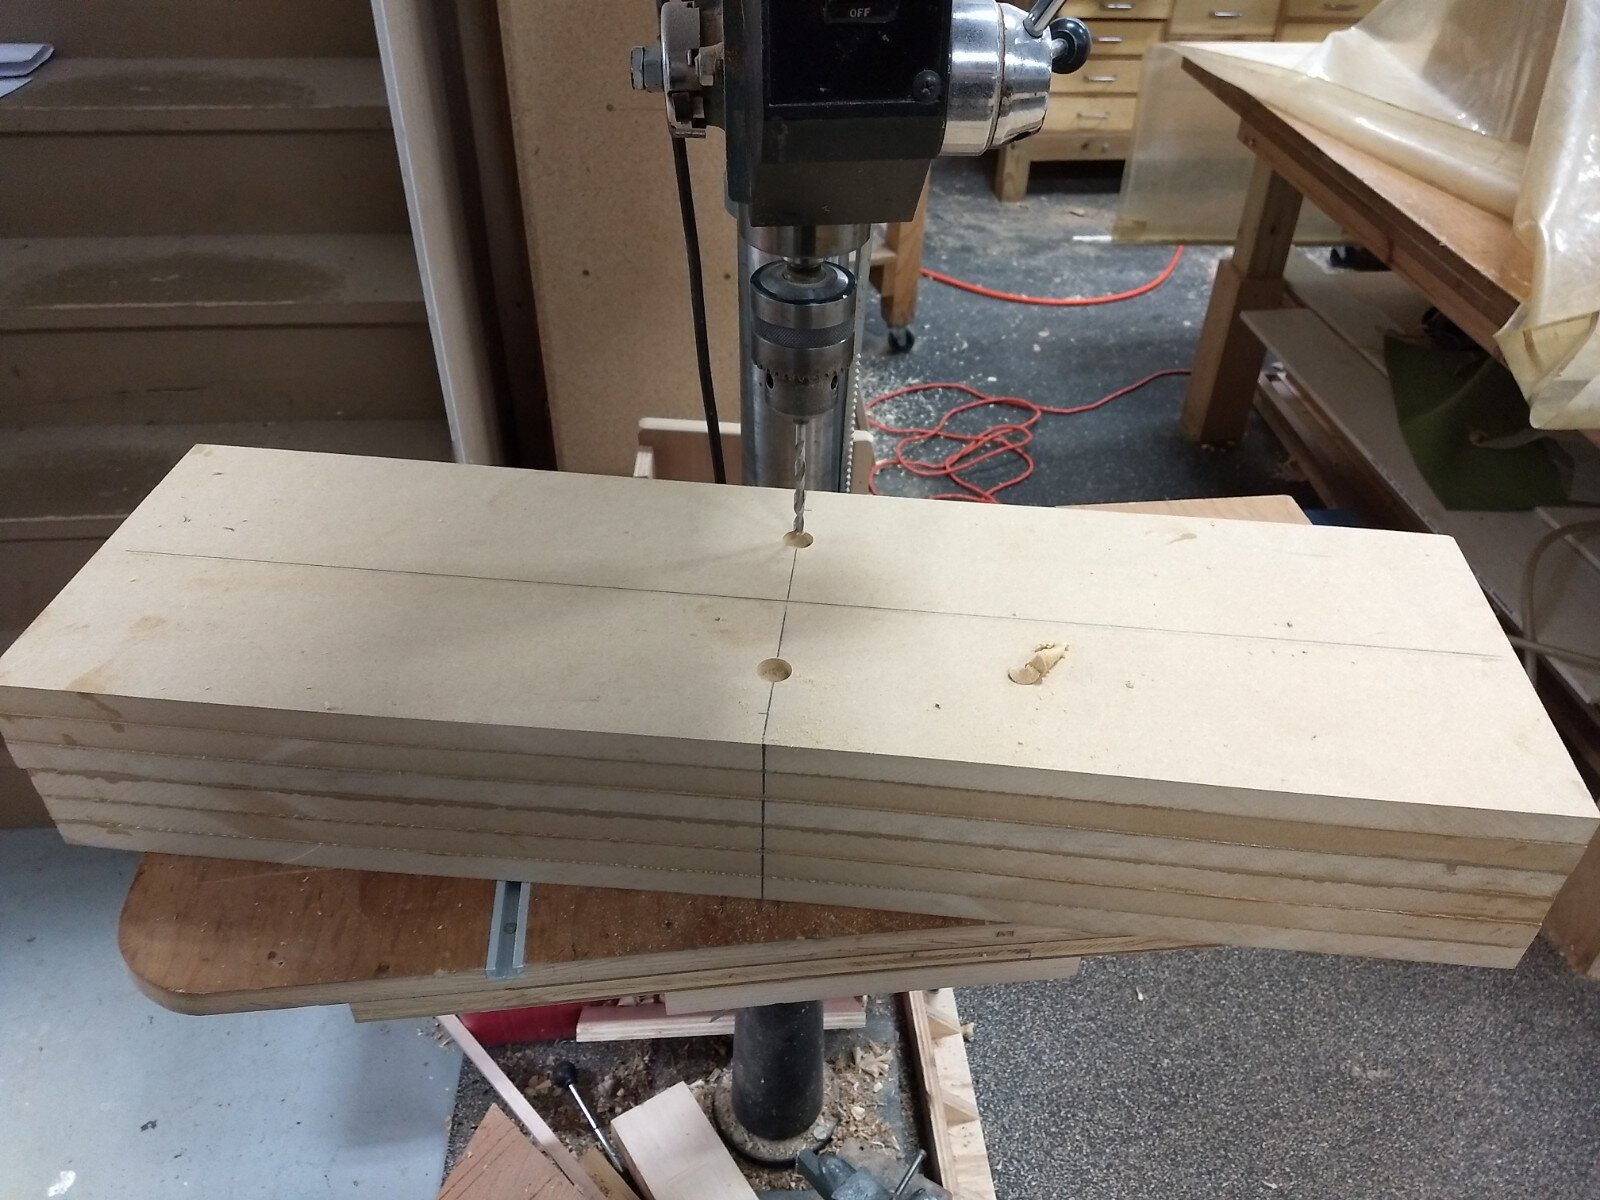 Drilling mounting holes